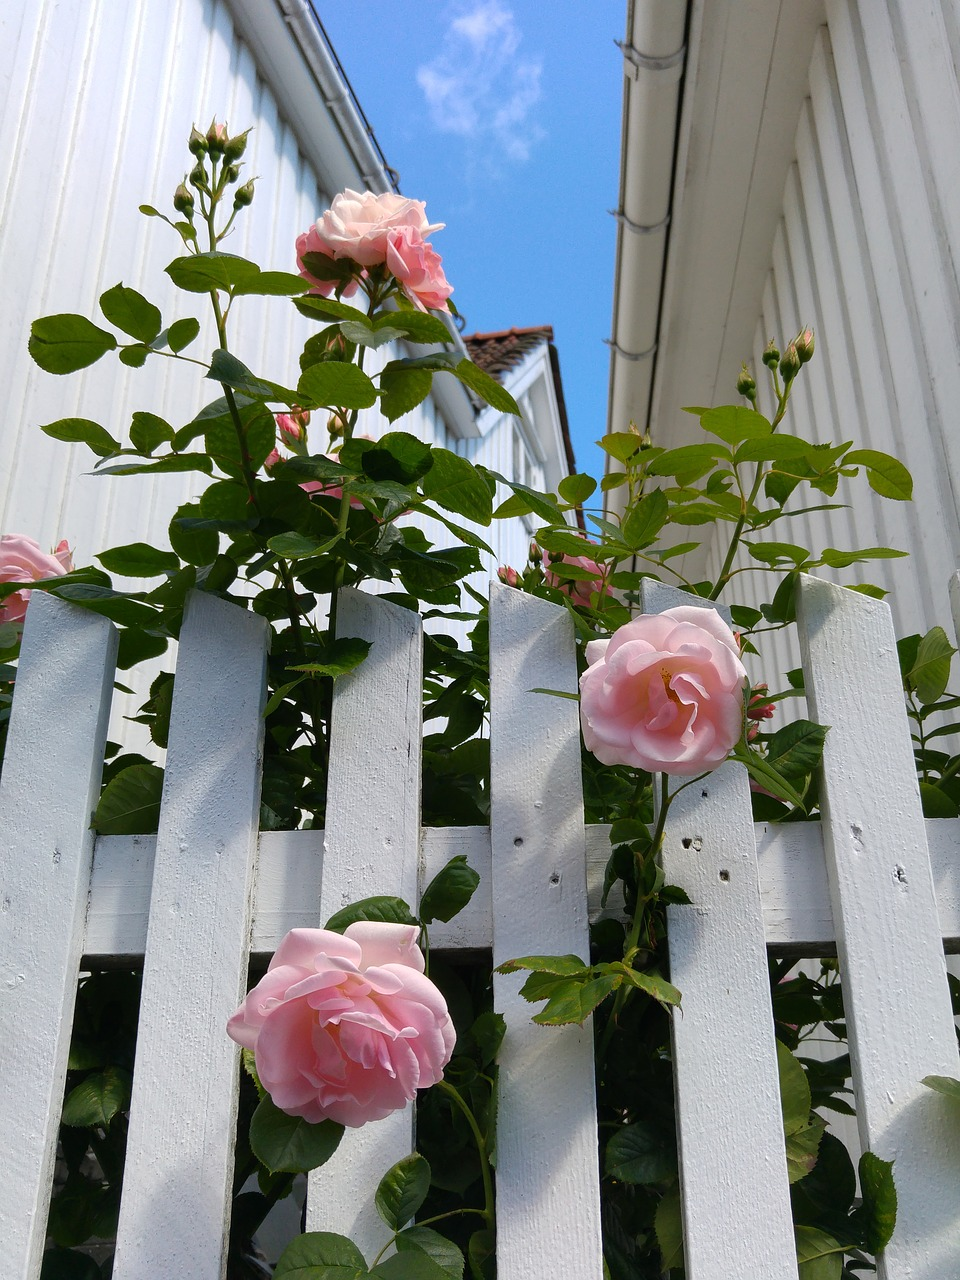 grow roses for curb appeal